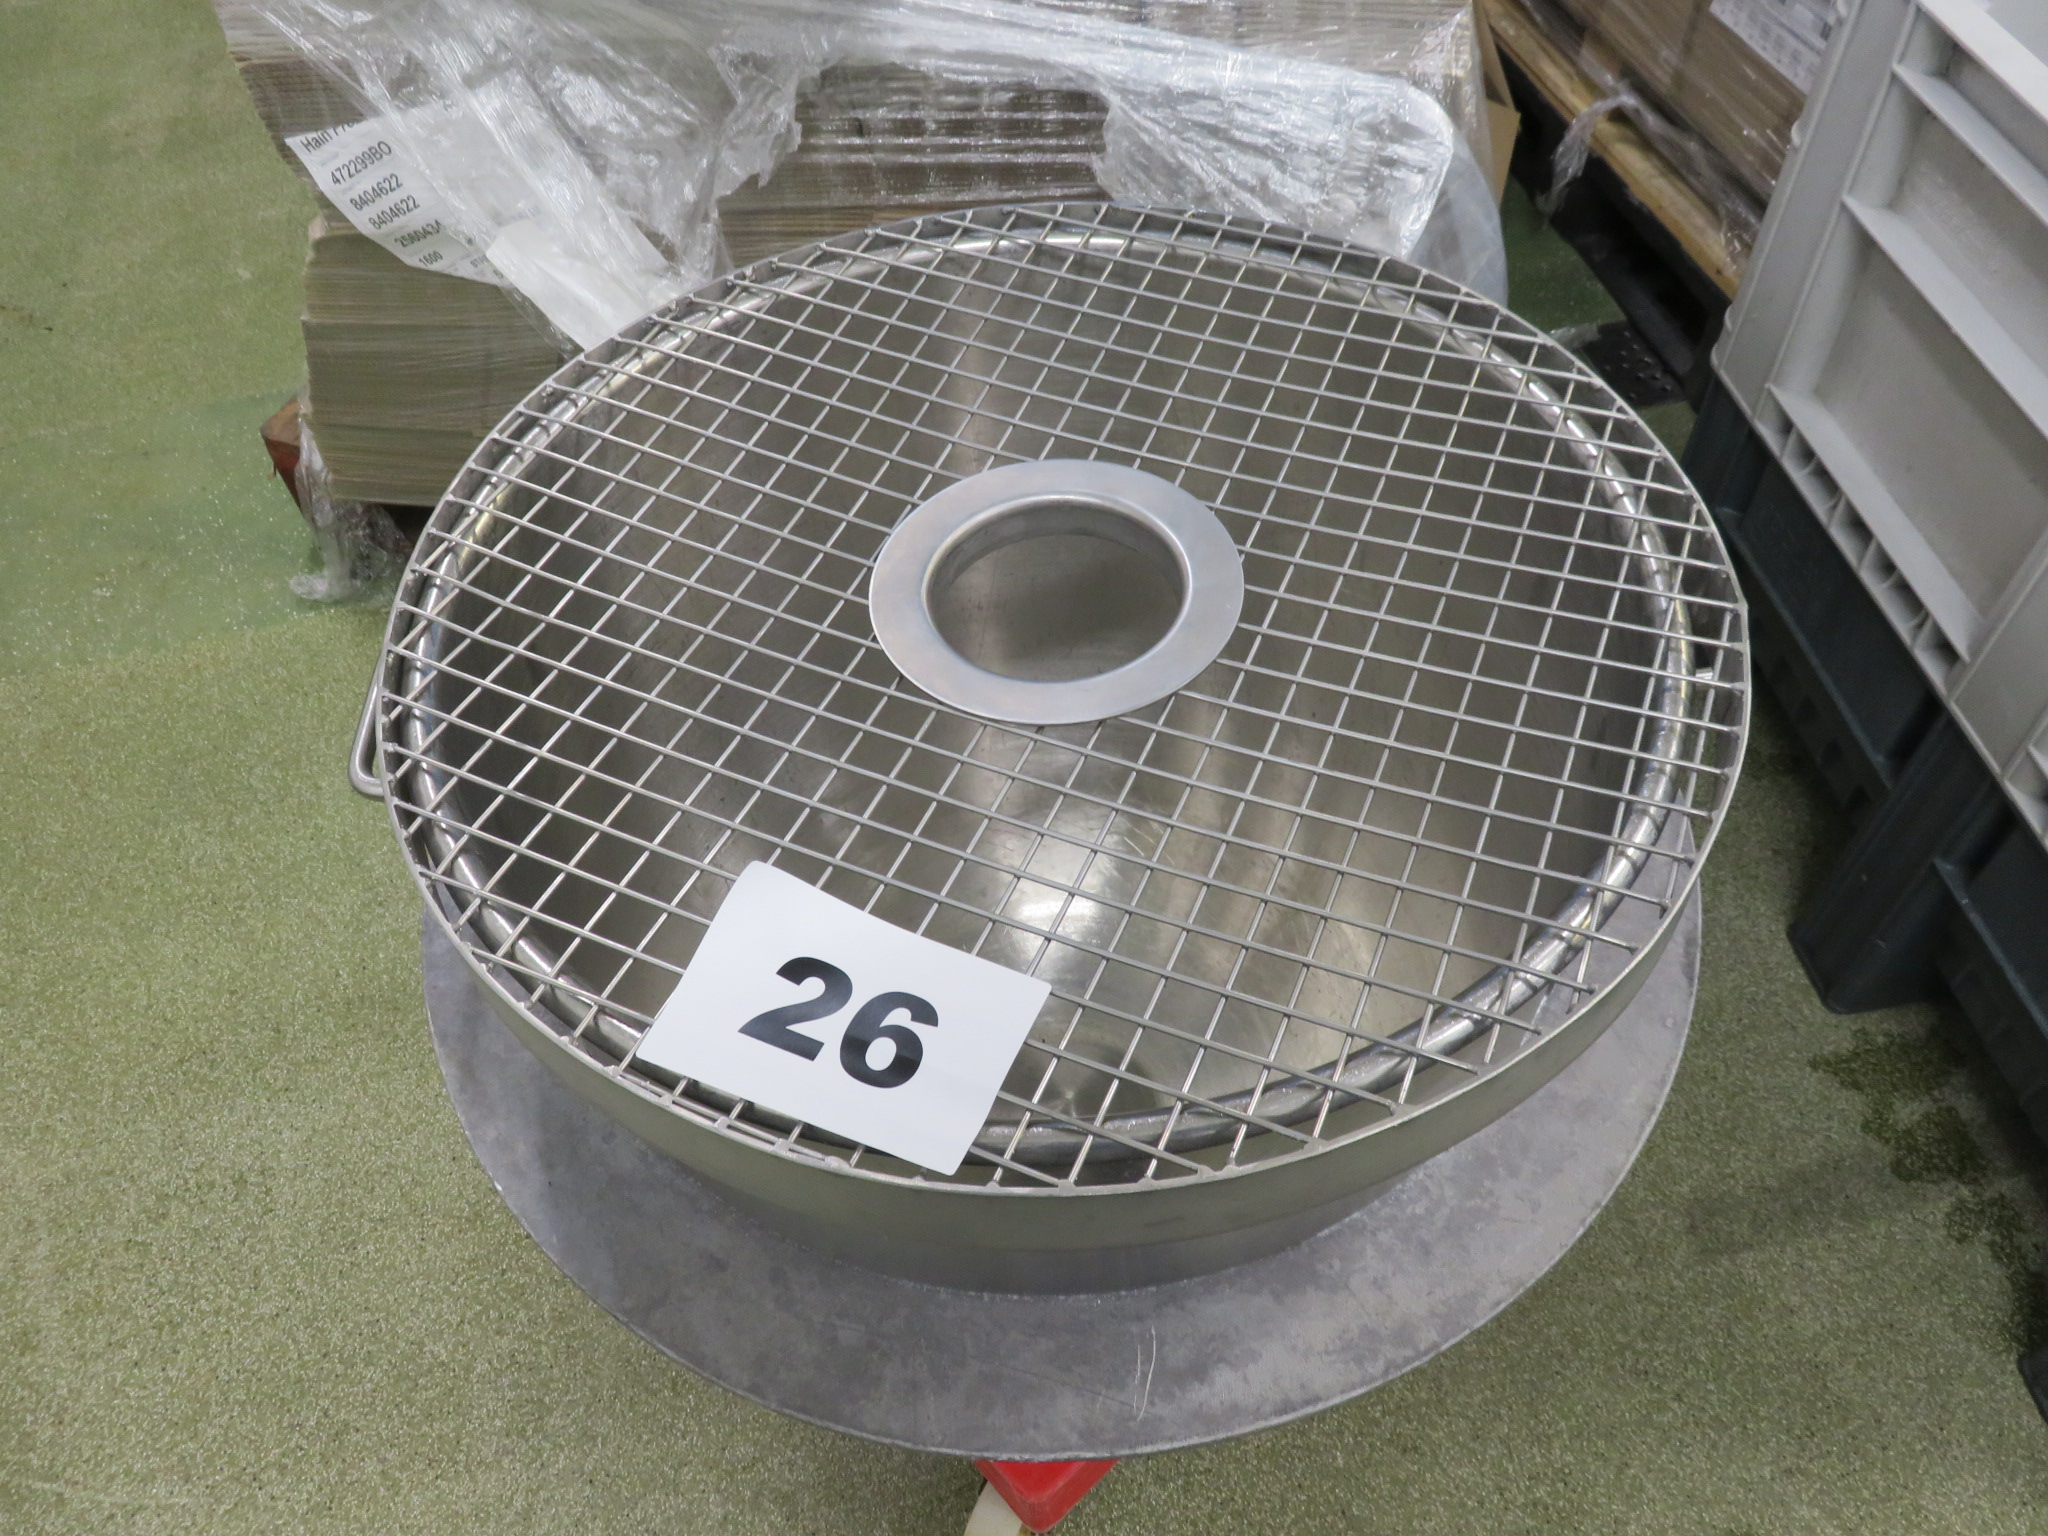 Lot 26 - Mixing bowl for Hobart 140 quart type mixer. LO £15.